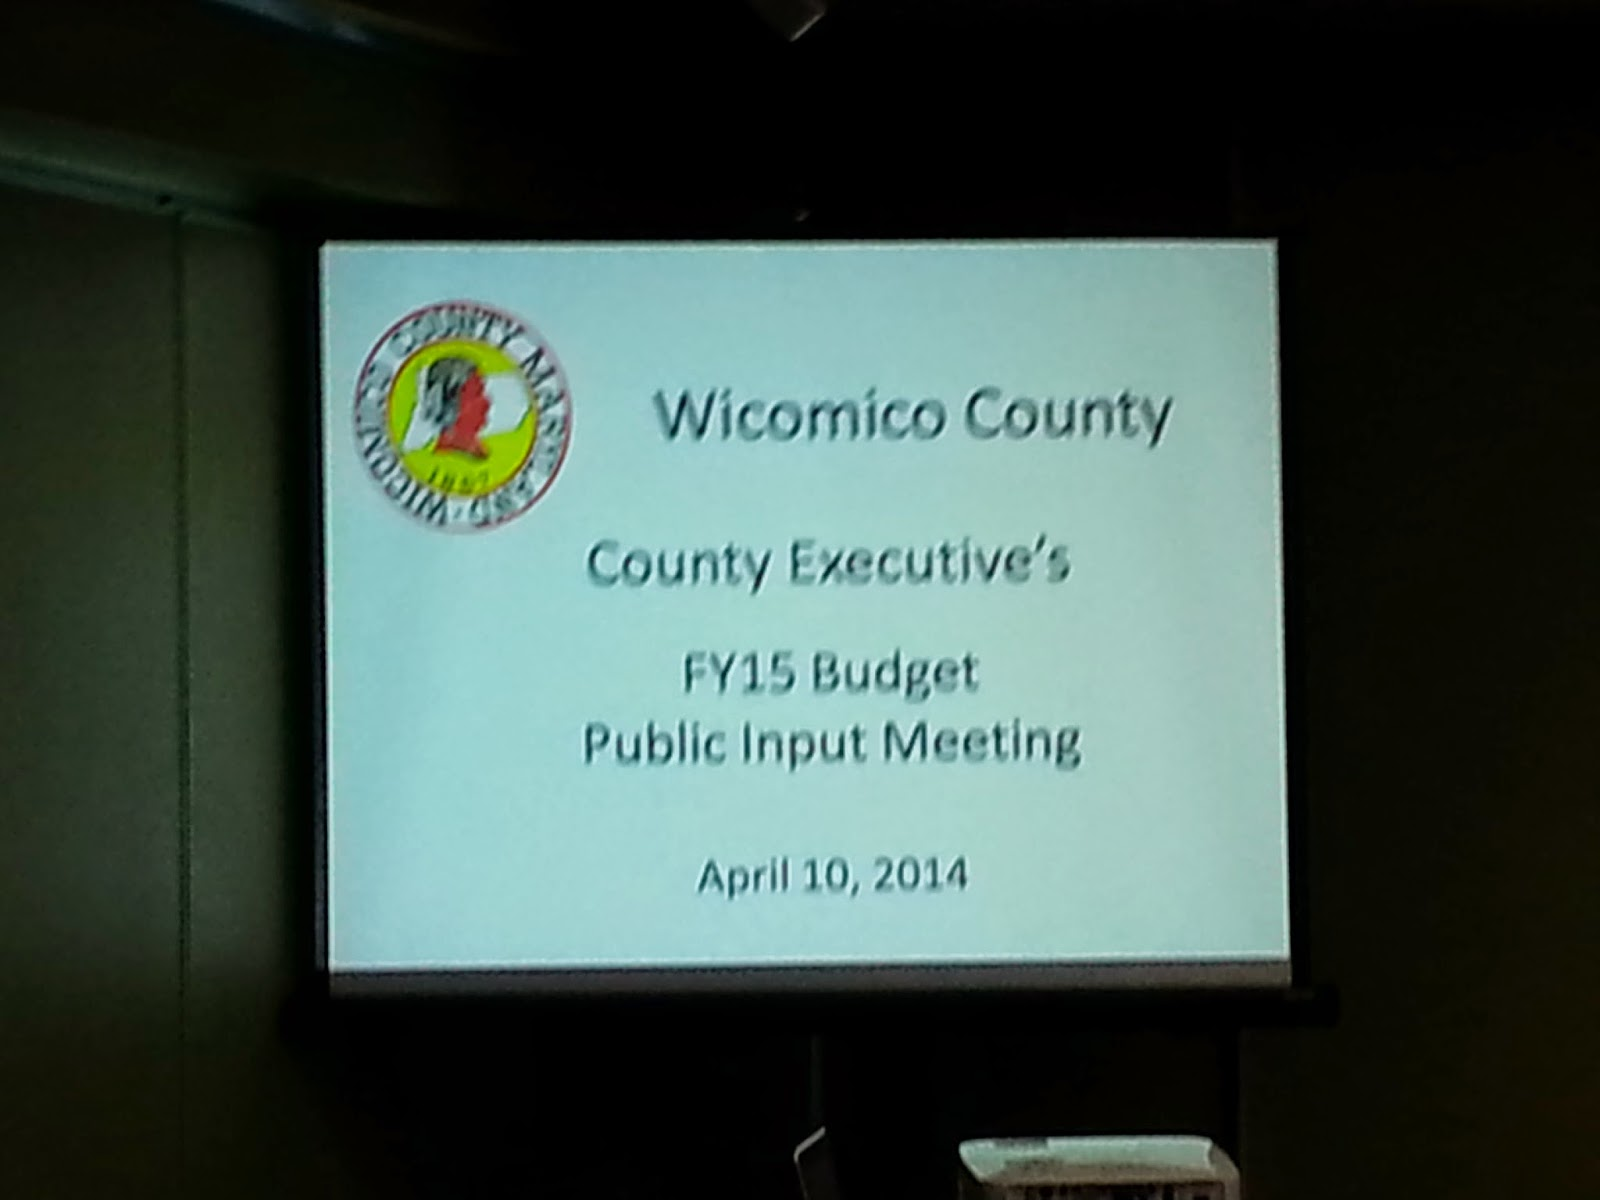 Wicomico County Property Taxes